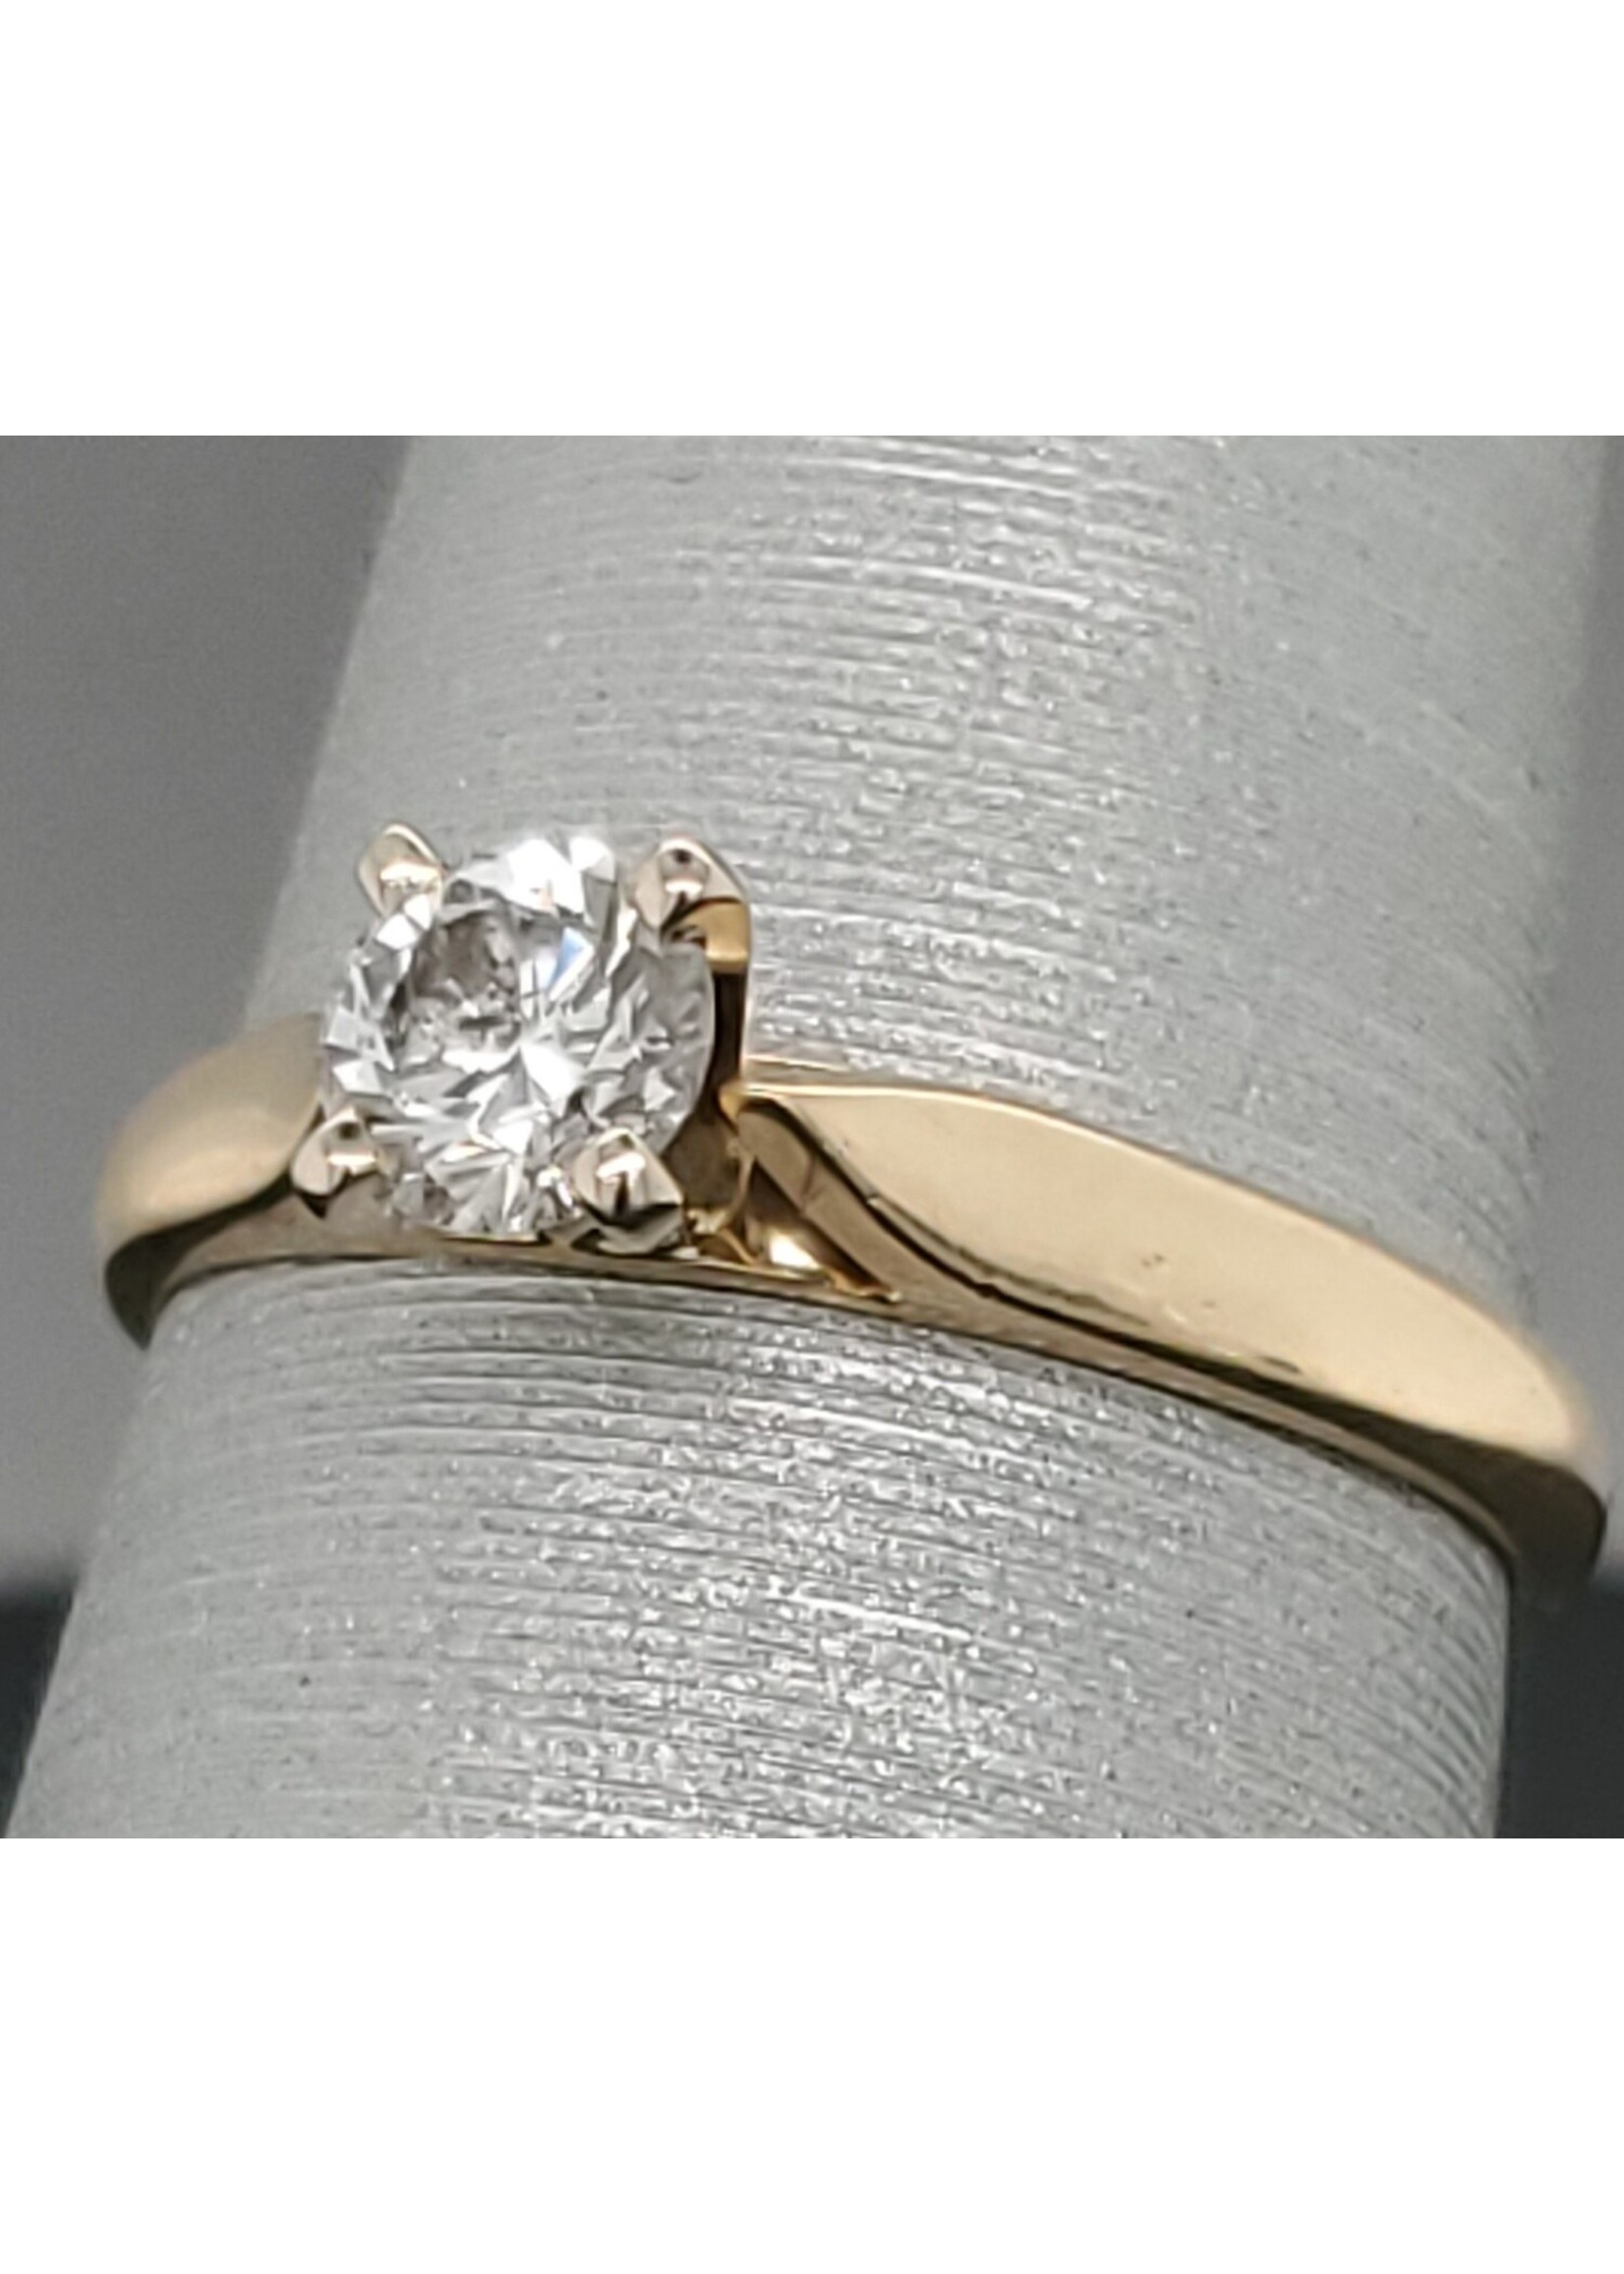 Vintage Jewellery Vintage 14k Solitaire Ring | Sz 6.25 1.8mm band